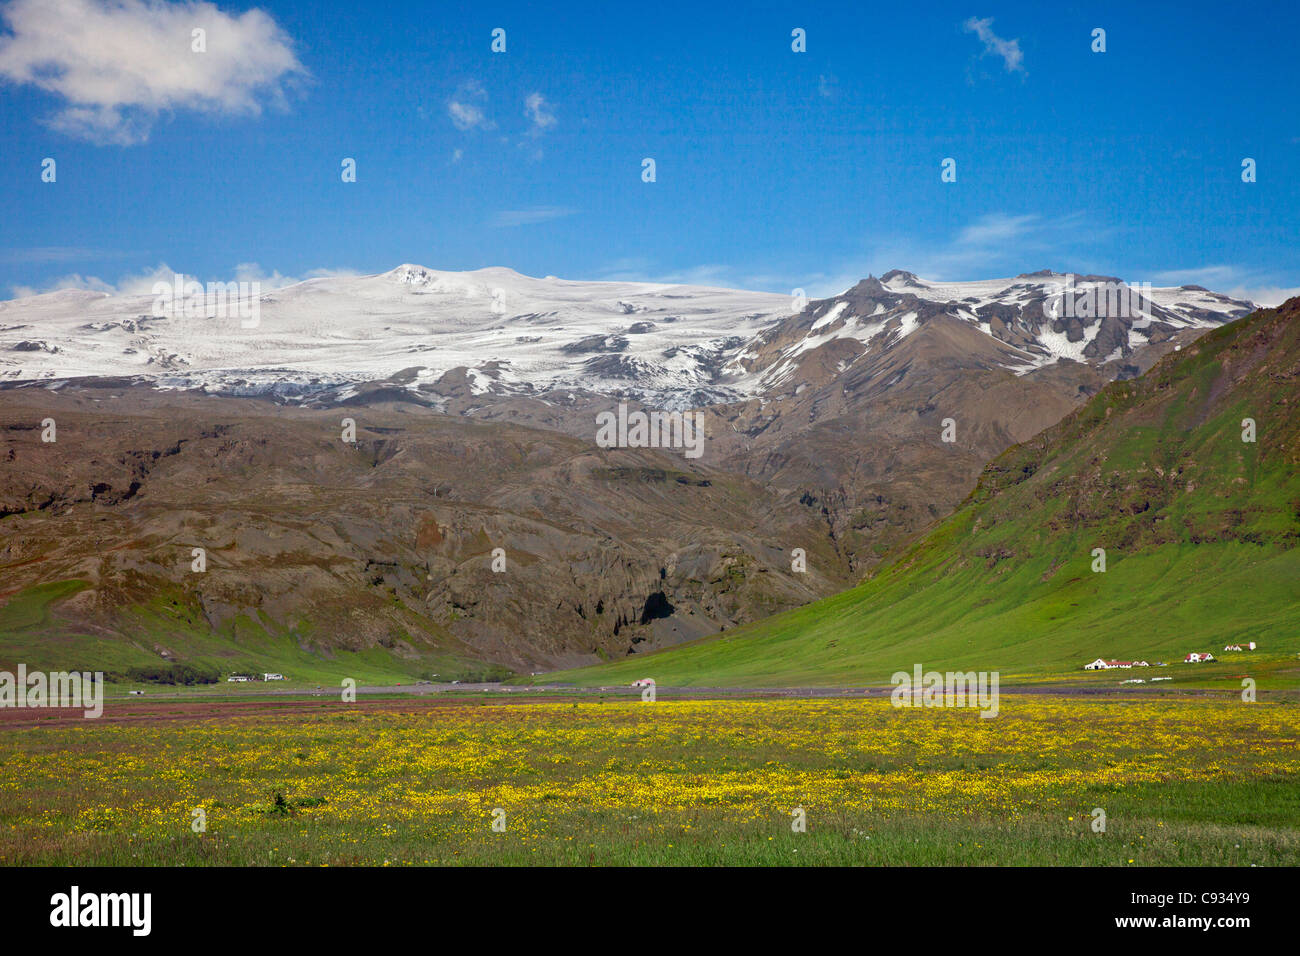 Farms in the southern foothills of Eyjafjallajokull, a stratovolcano whose ice cap covers 39 square miles. - Stock Image